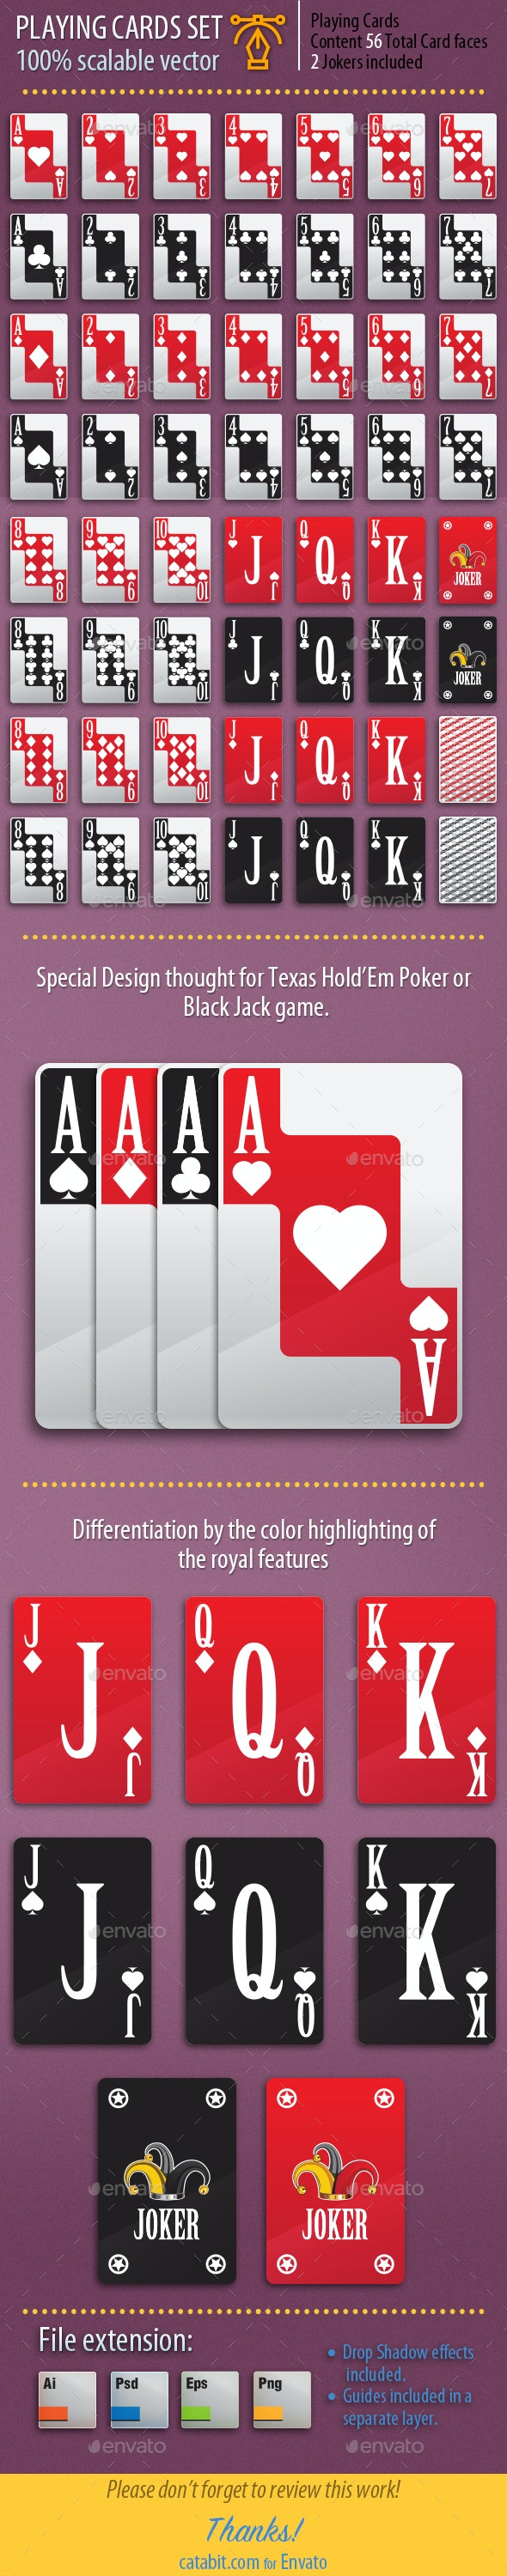 Playing Cards Set 010 - Game Assets